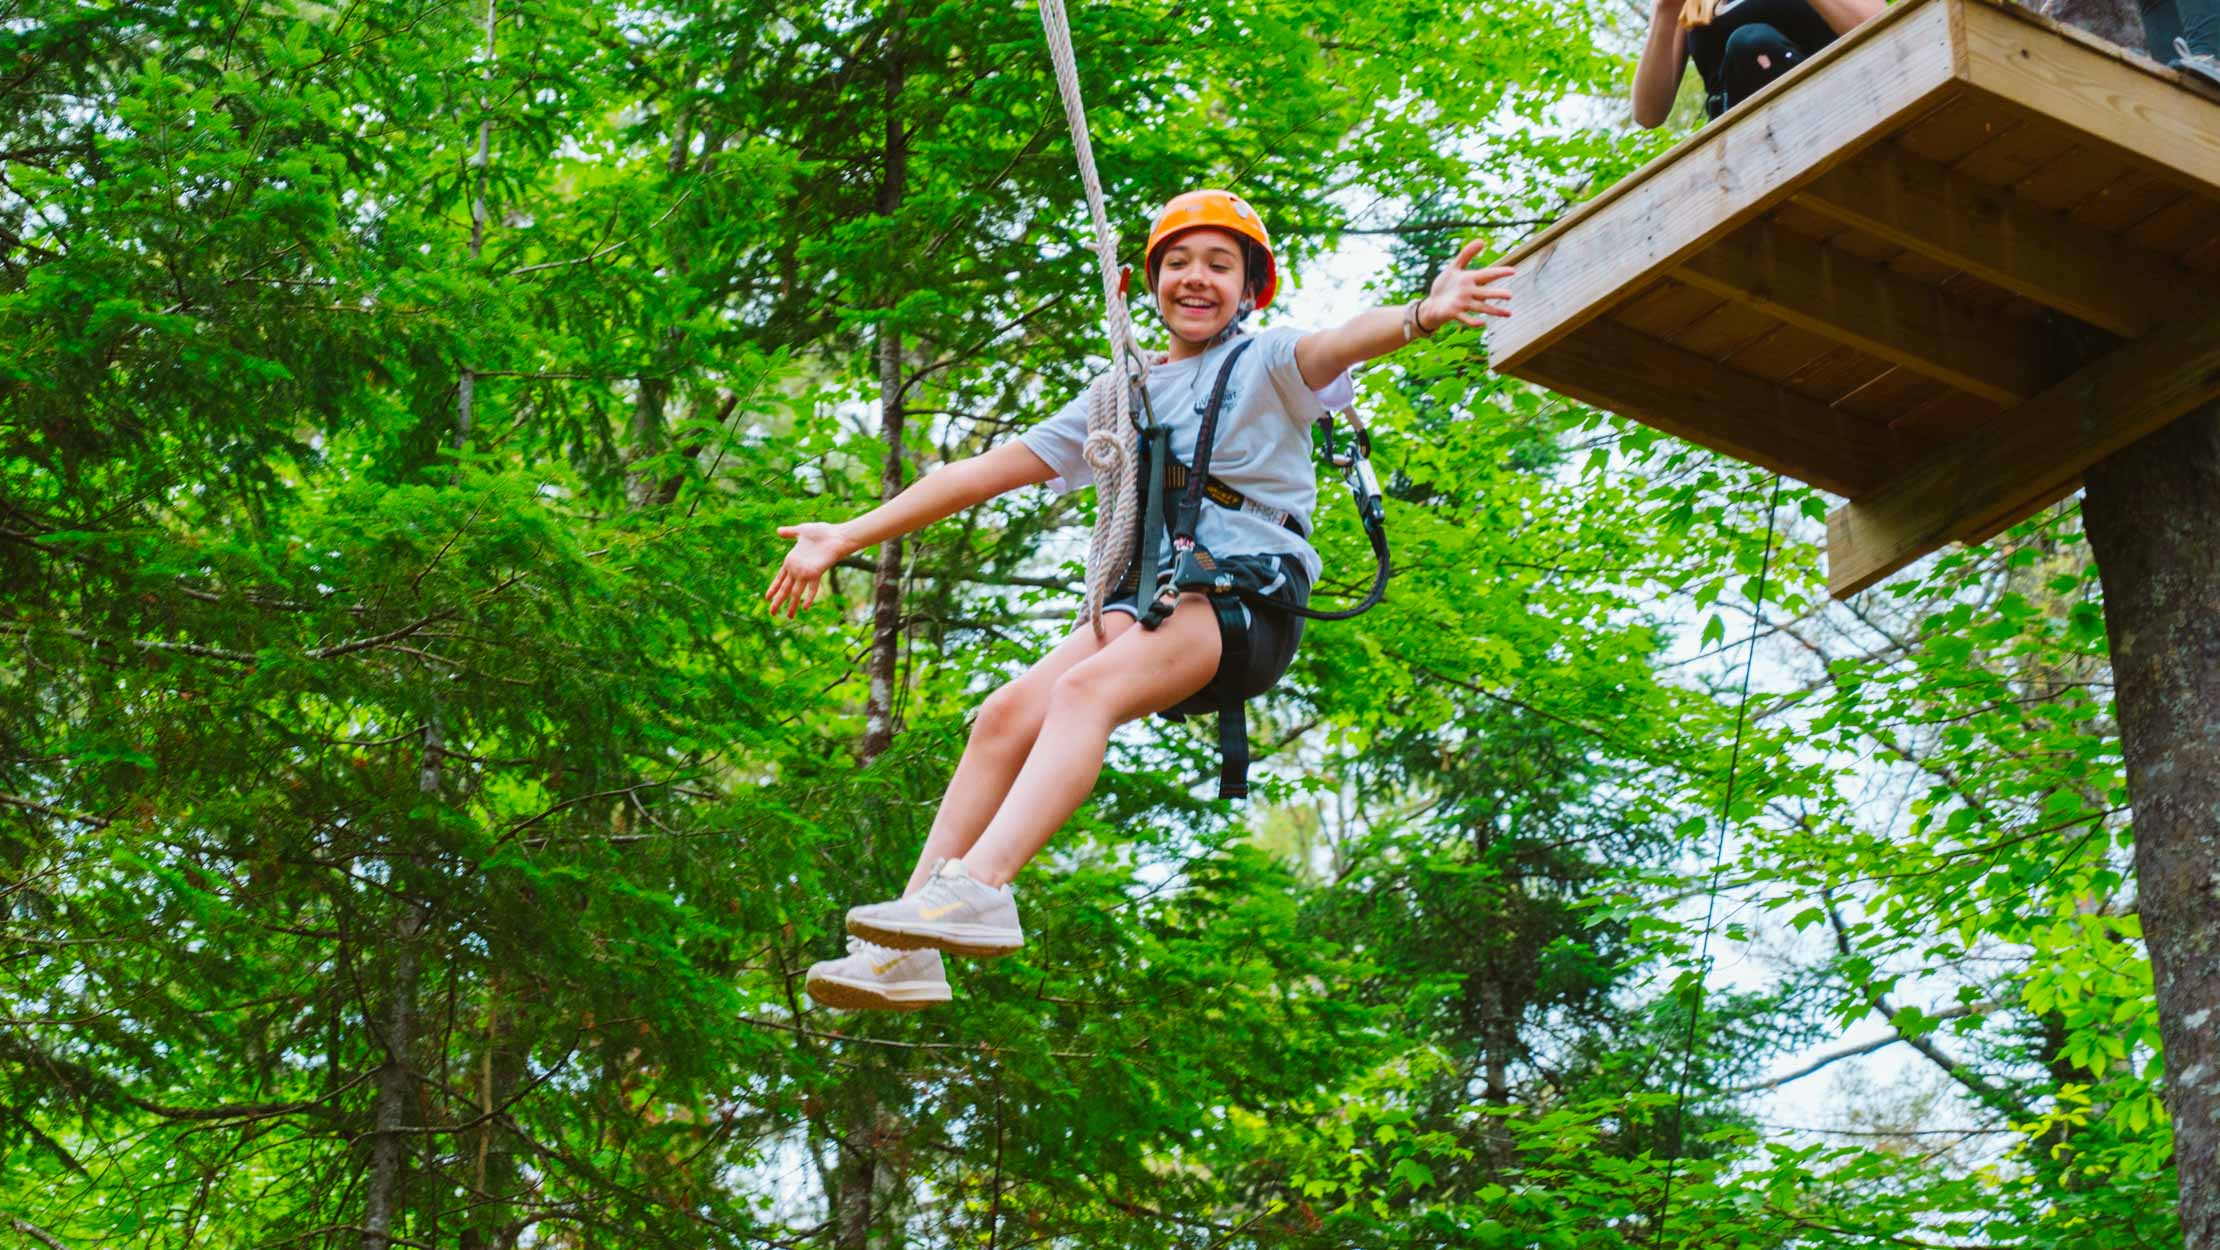 Girl zip lining with her arms stretched out